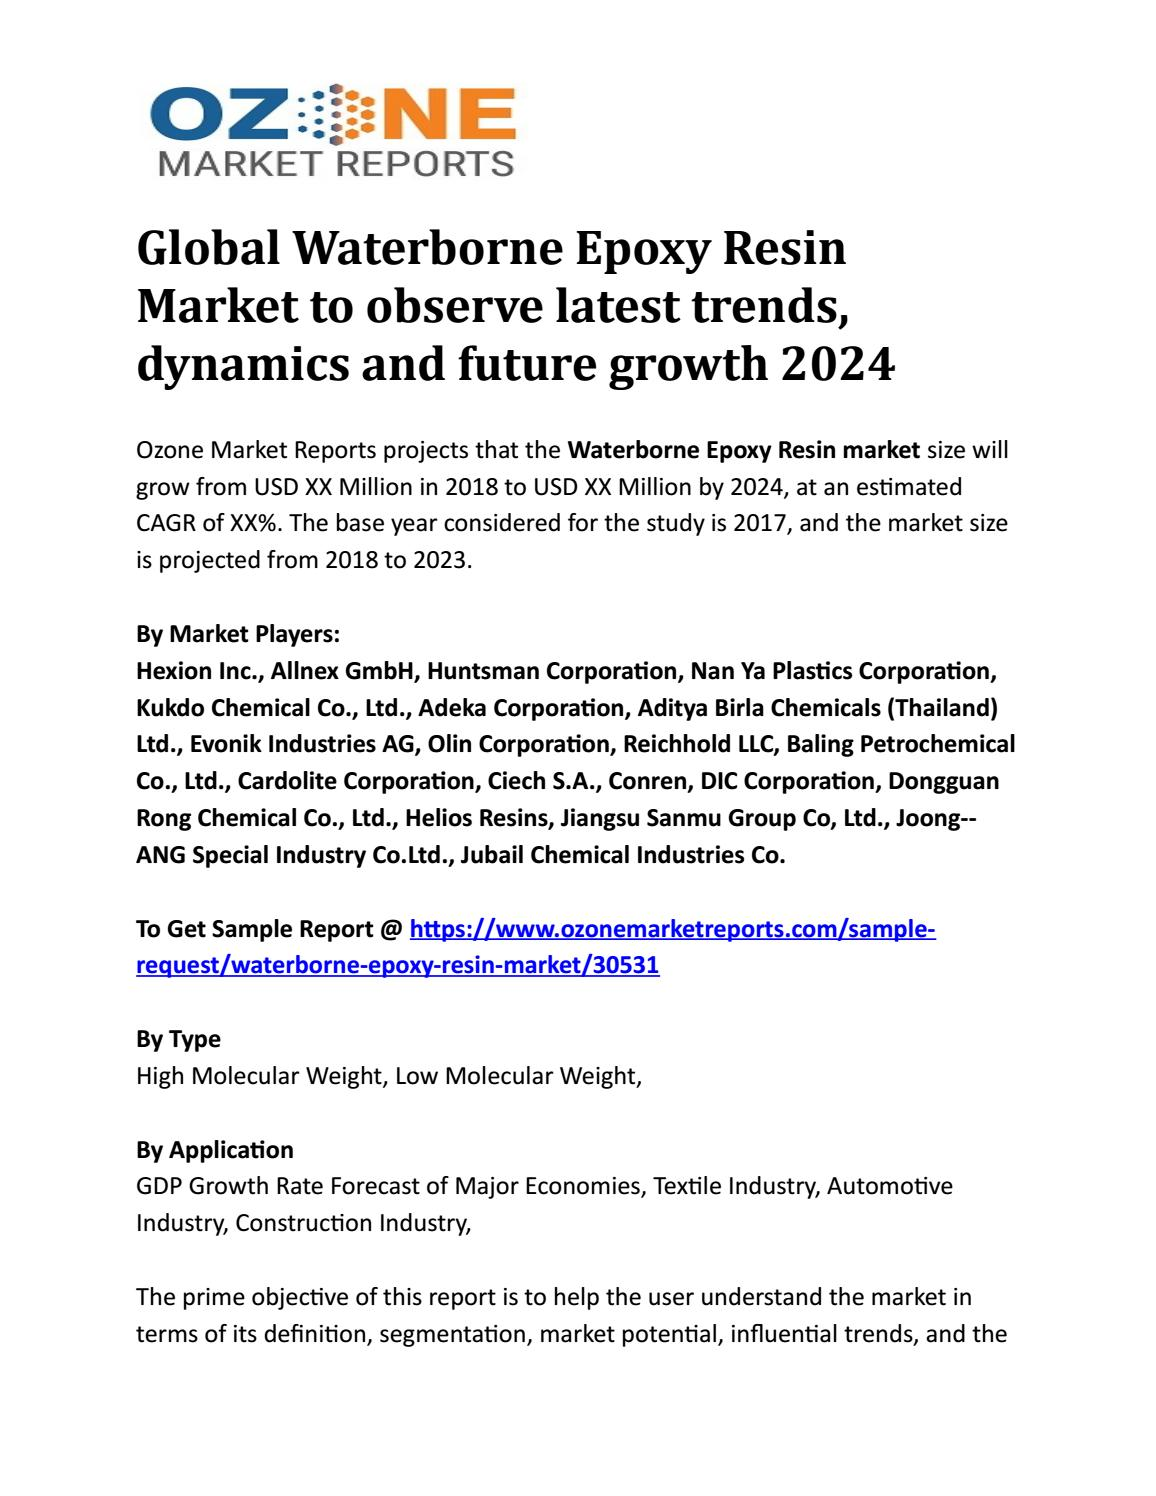 Global Waterborne Epoxy Resin Market to observe latest